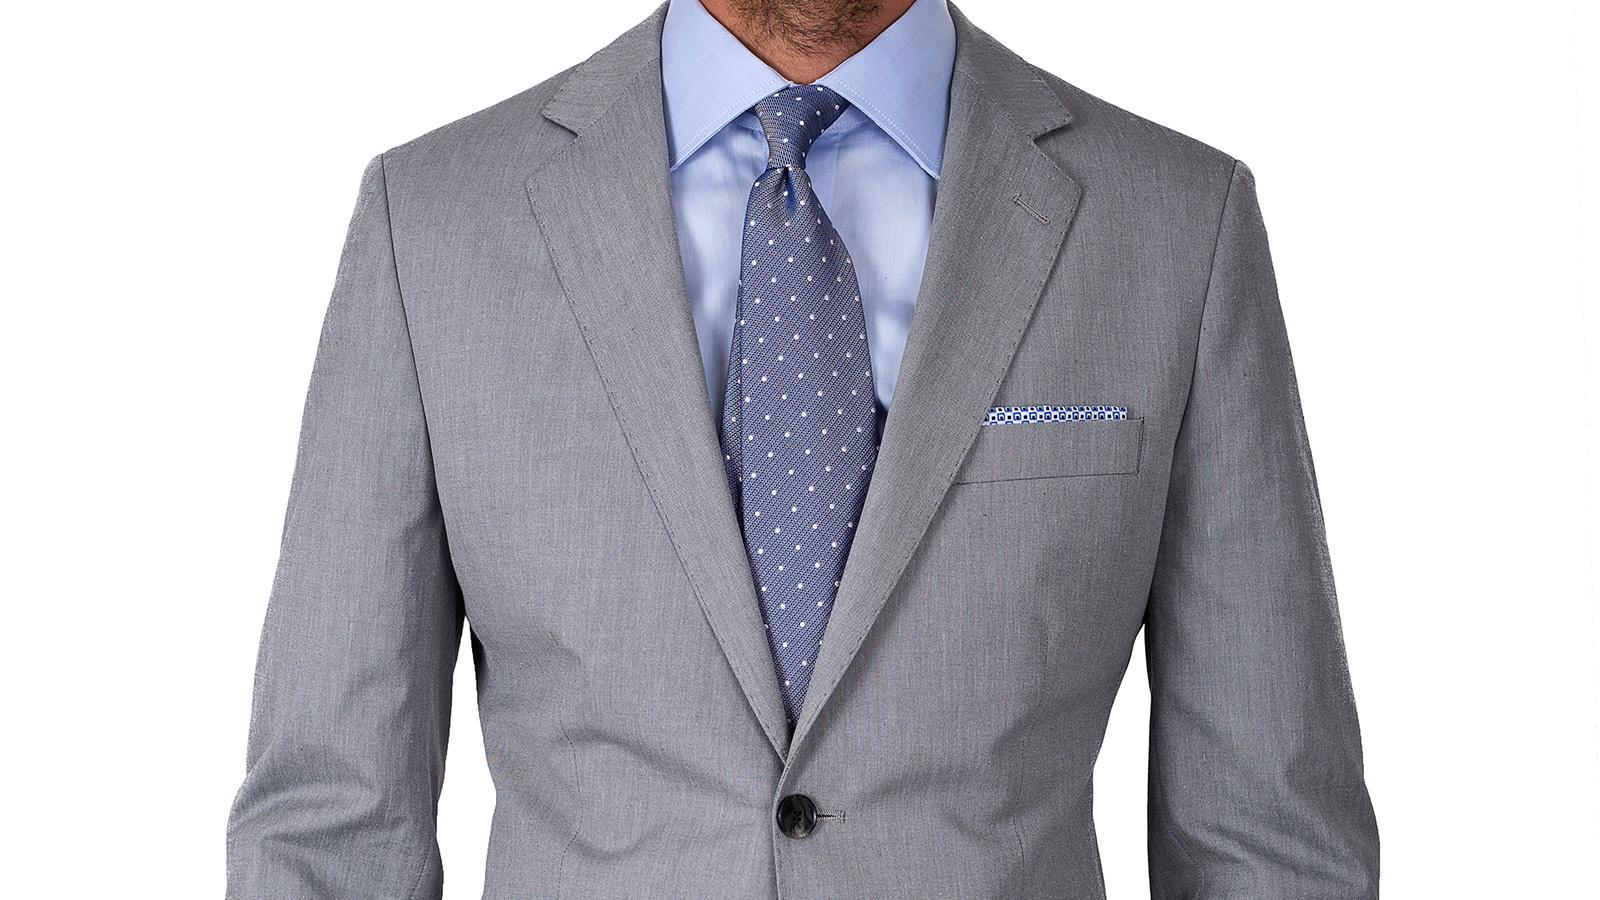 Suit in Grey Cotton - slider image 1